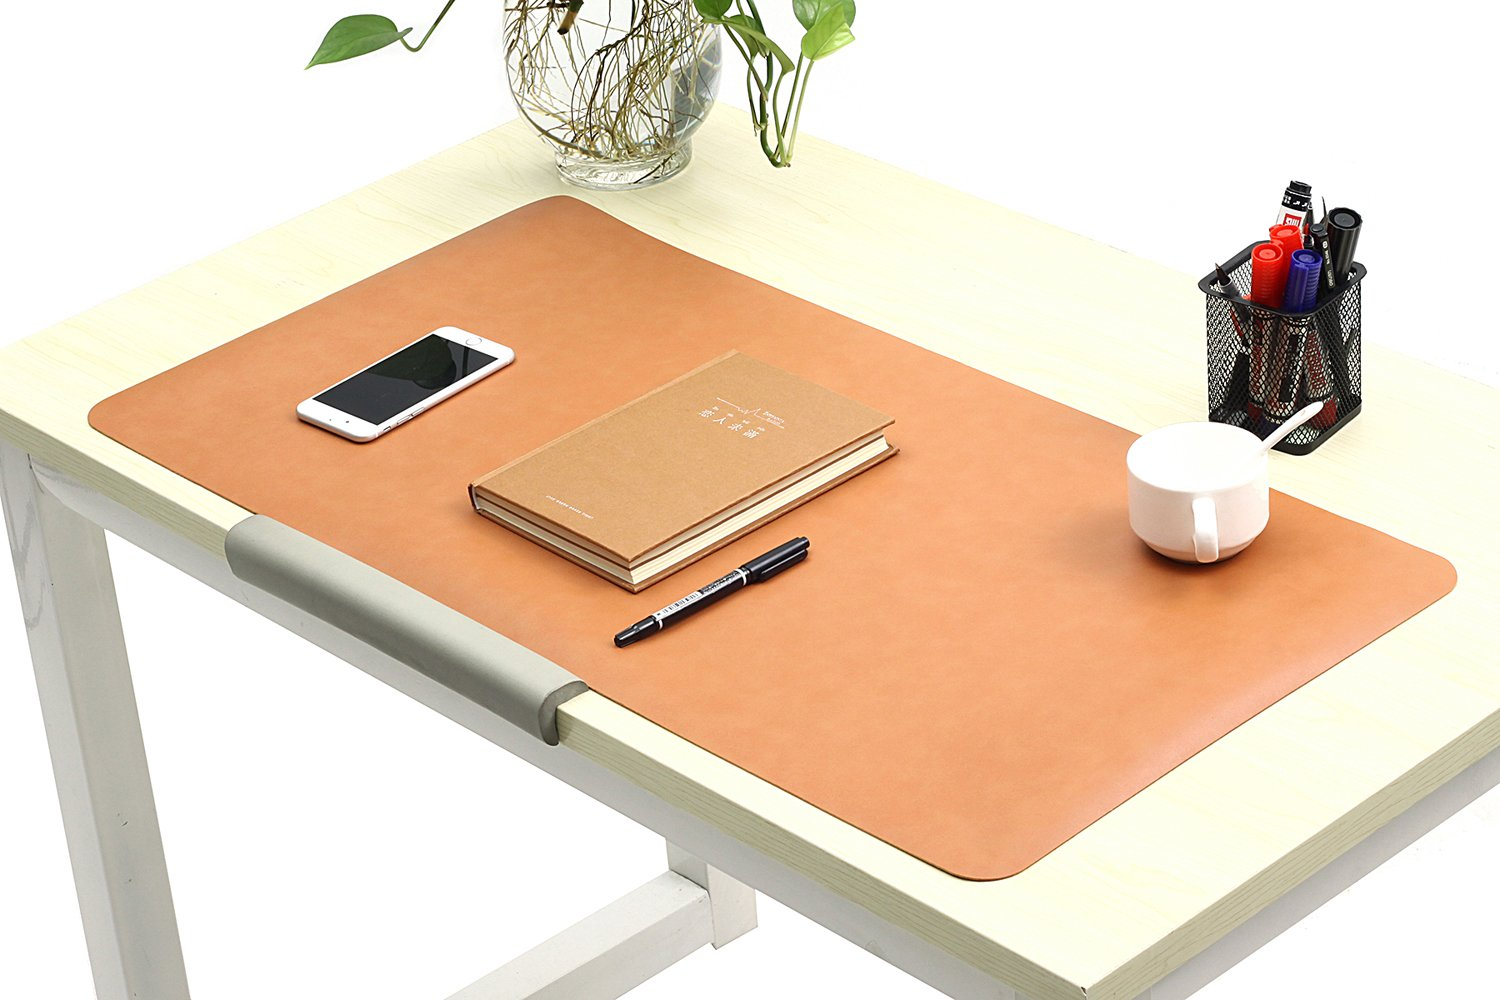 "Leather Desk Pads/Blotter Eco-friendly Microfiber leather Desk Mat Protector for Home & Office Non slip Laptop Keyboard Mouse Pads Extra Large 31.5"" x 15.7"" x 0.08"" (Light-brown, Medium)"